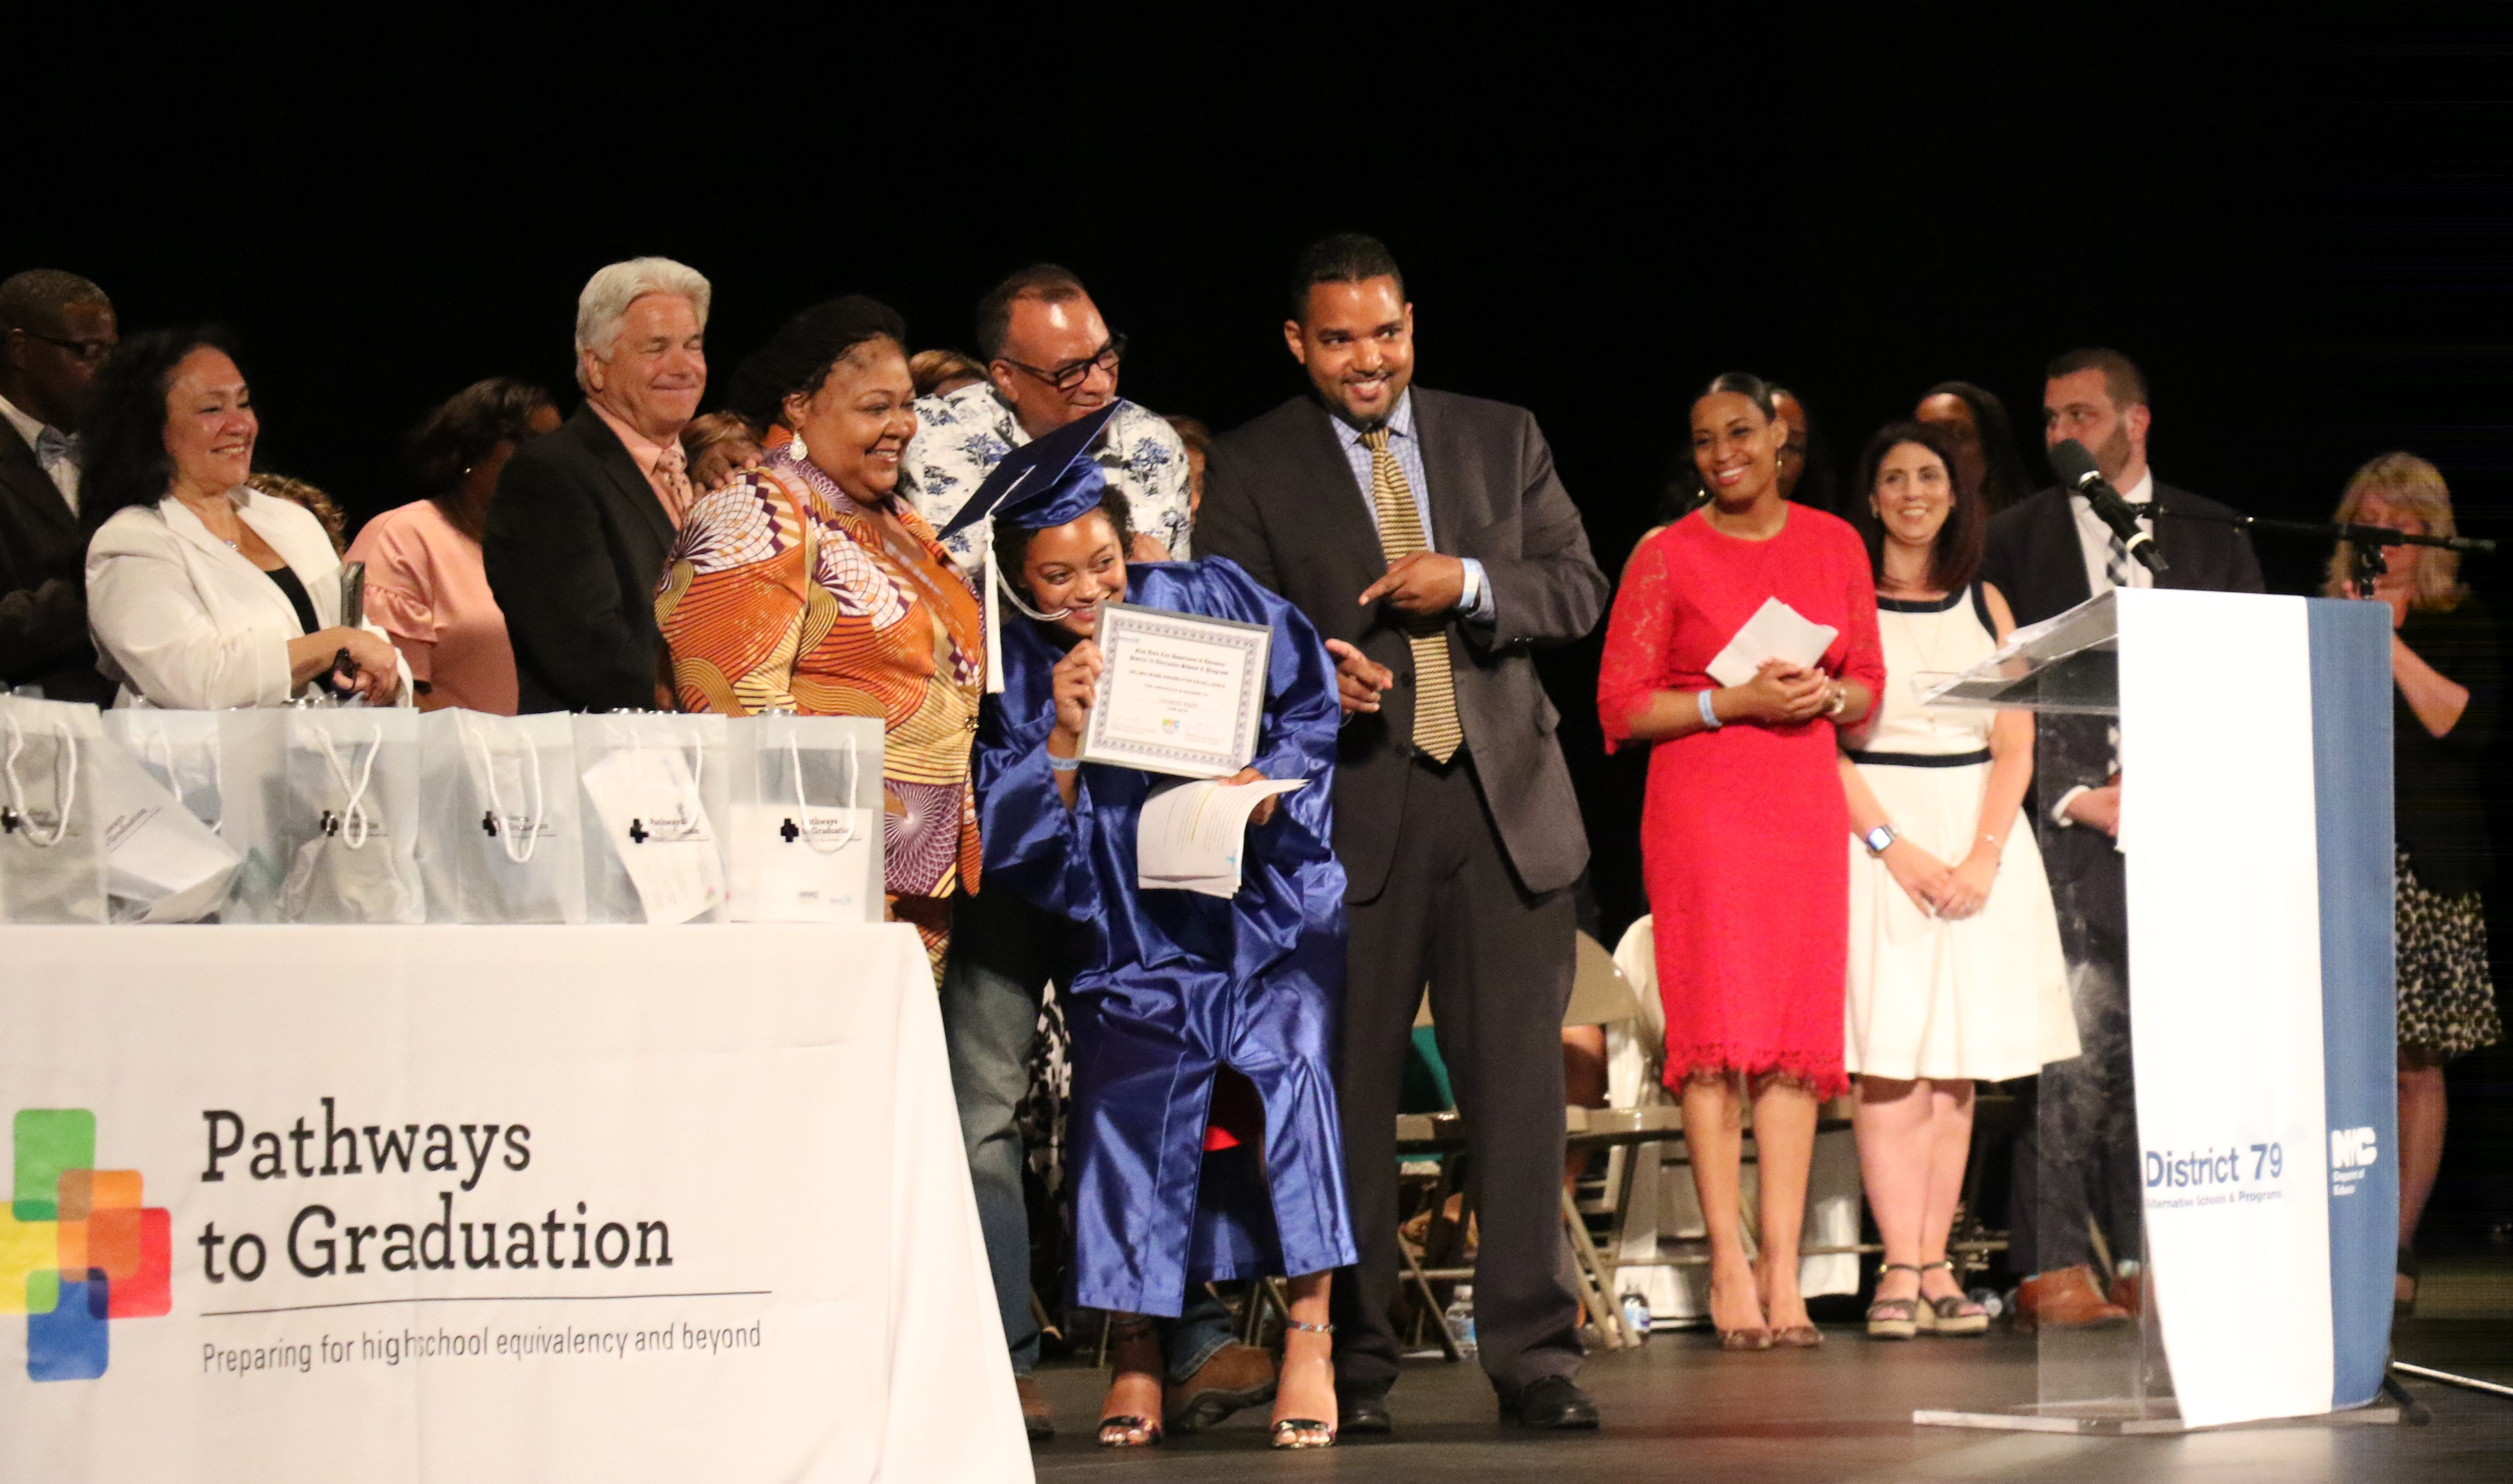 Jasmine Byrd receives an award for excellence after giving a speech to her fellow graduates.